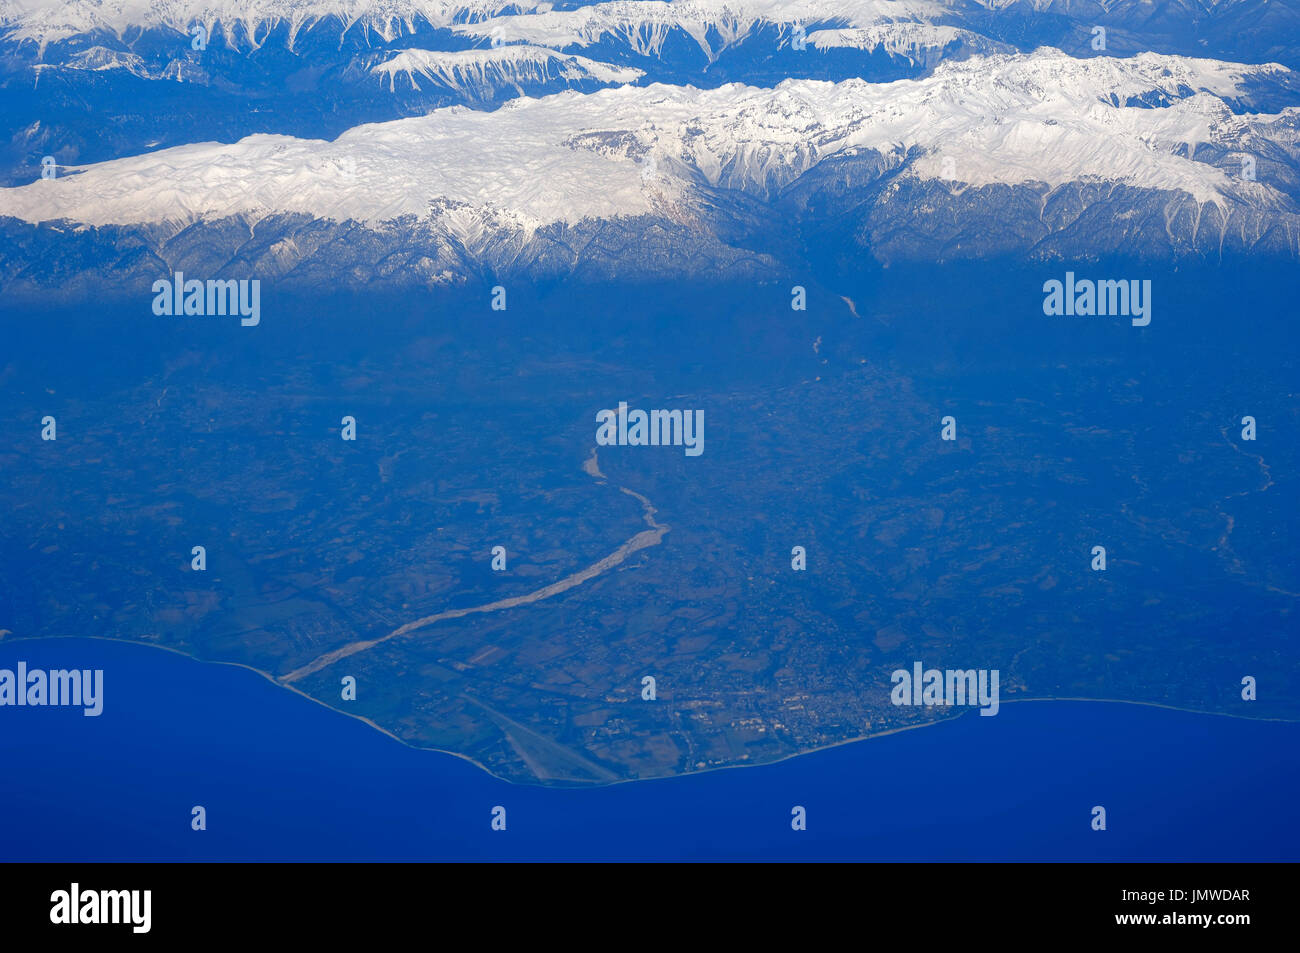 View From Airplane Caucasus Mountains Stock Photos & View From ...